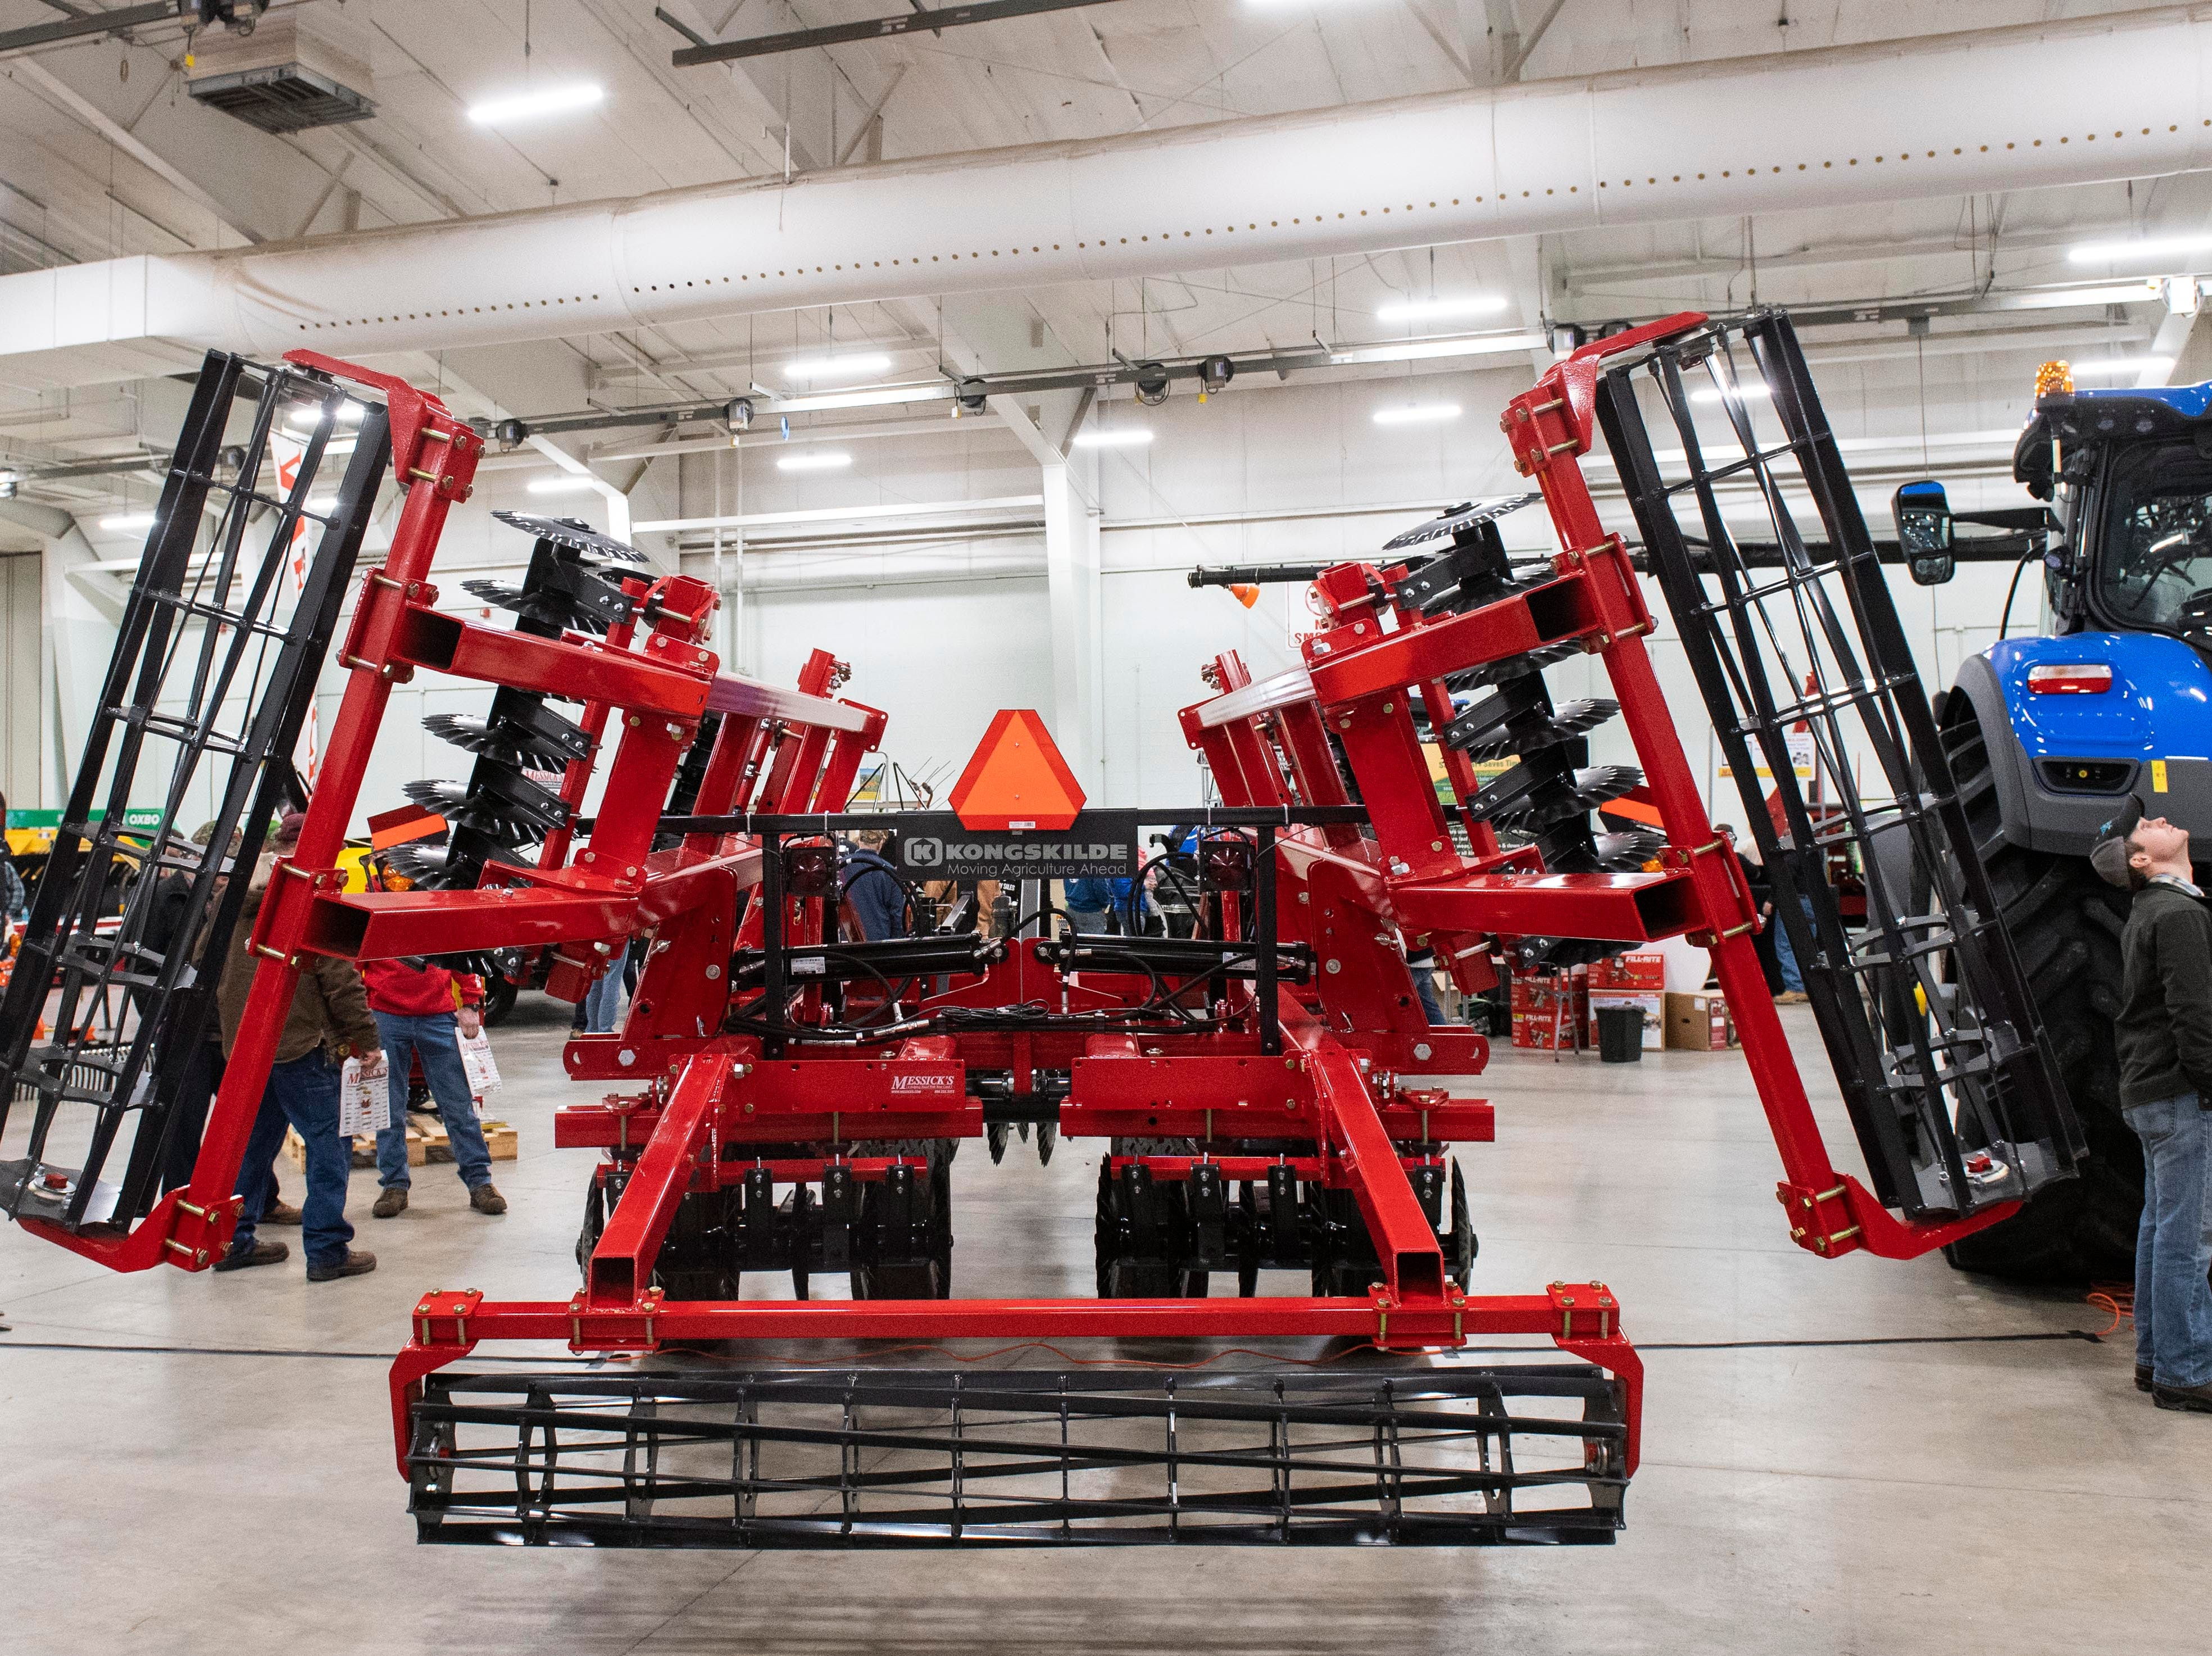 Large farm equipment fills the inside of Utz Arena and other buildings on Tuesday, Jan. 8, 2019. The Keystone Farm Show has nearly 420 vendors and is expected to bring up to 15,000 people to the York Expo Center. The show runs through Thursday, Jan. 10.